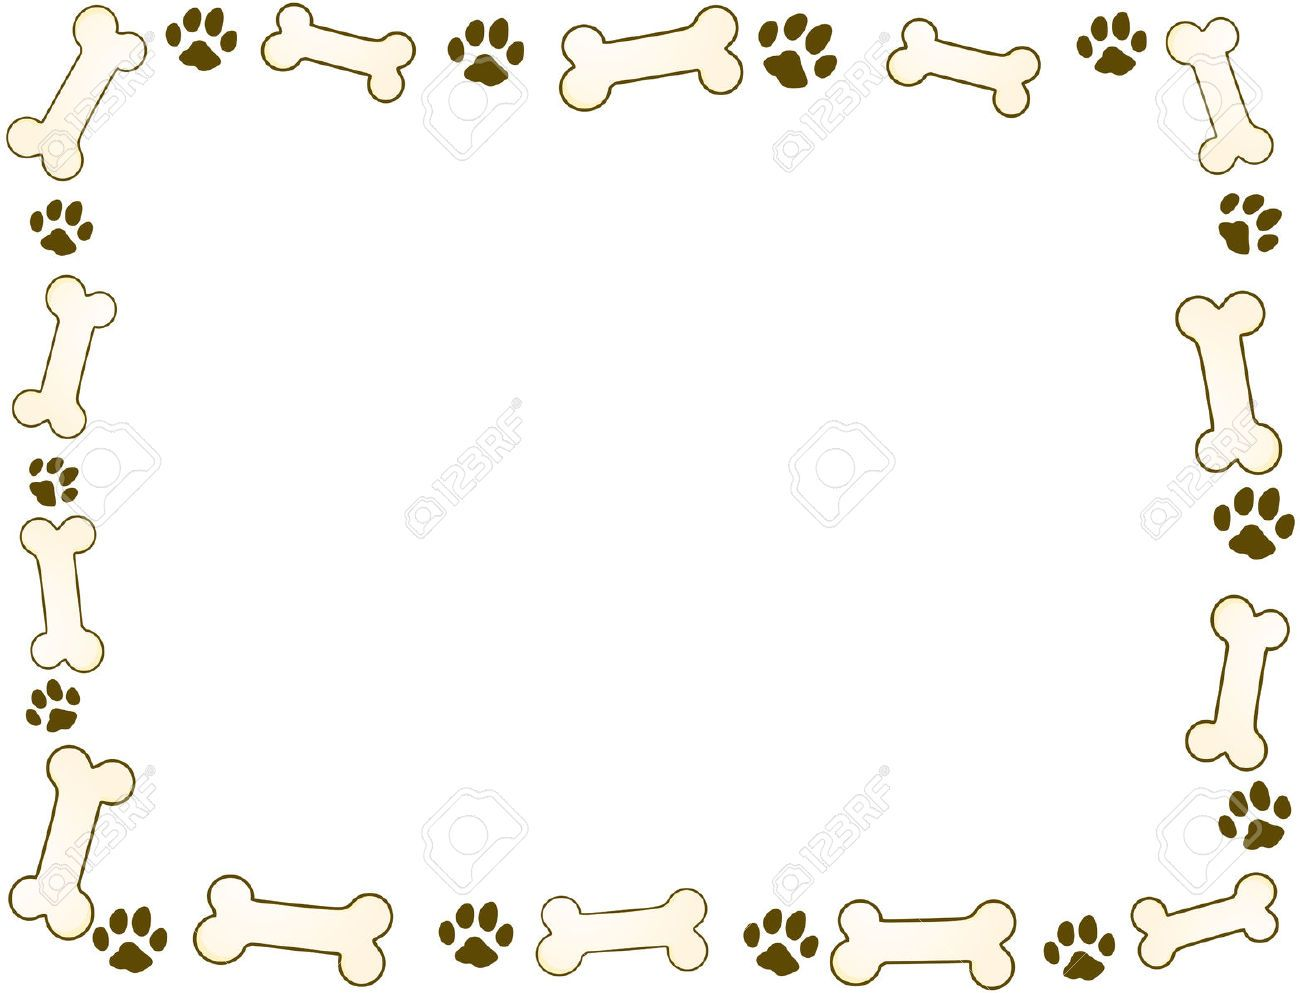 Clipart dogs picture frame. A dog bone with